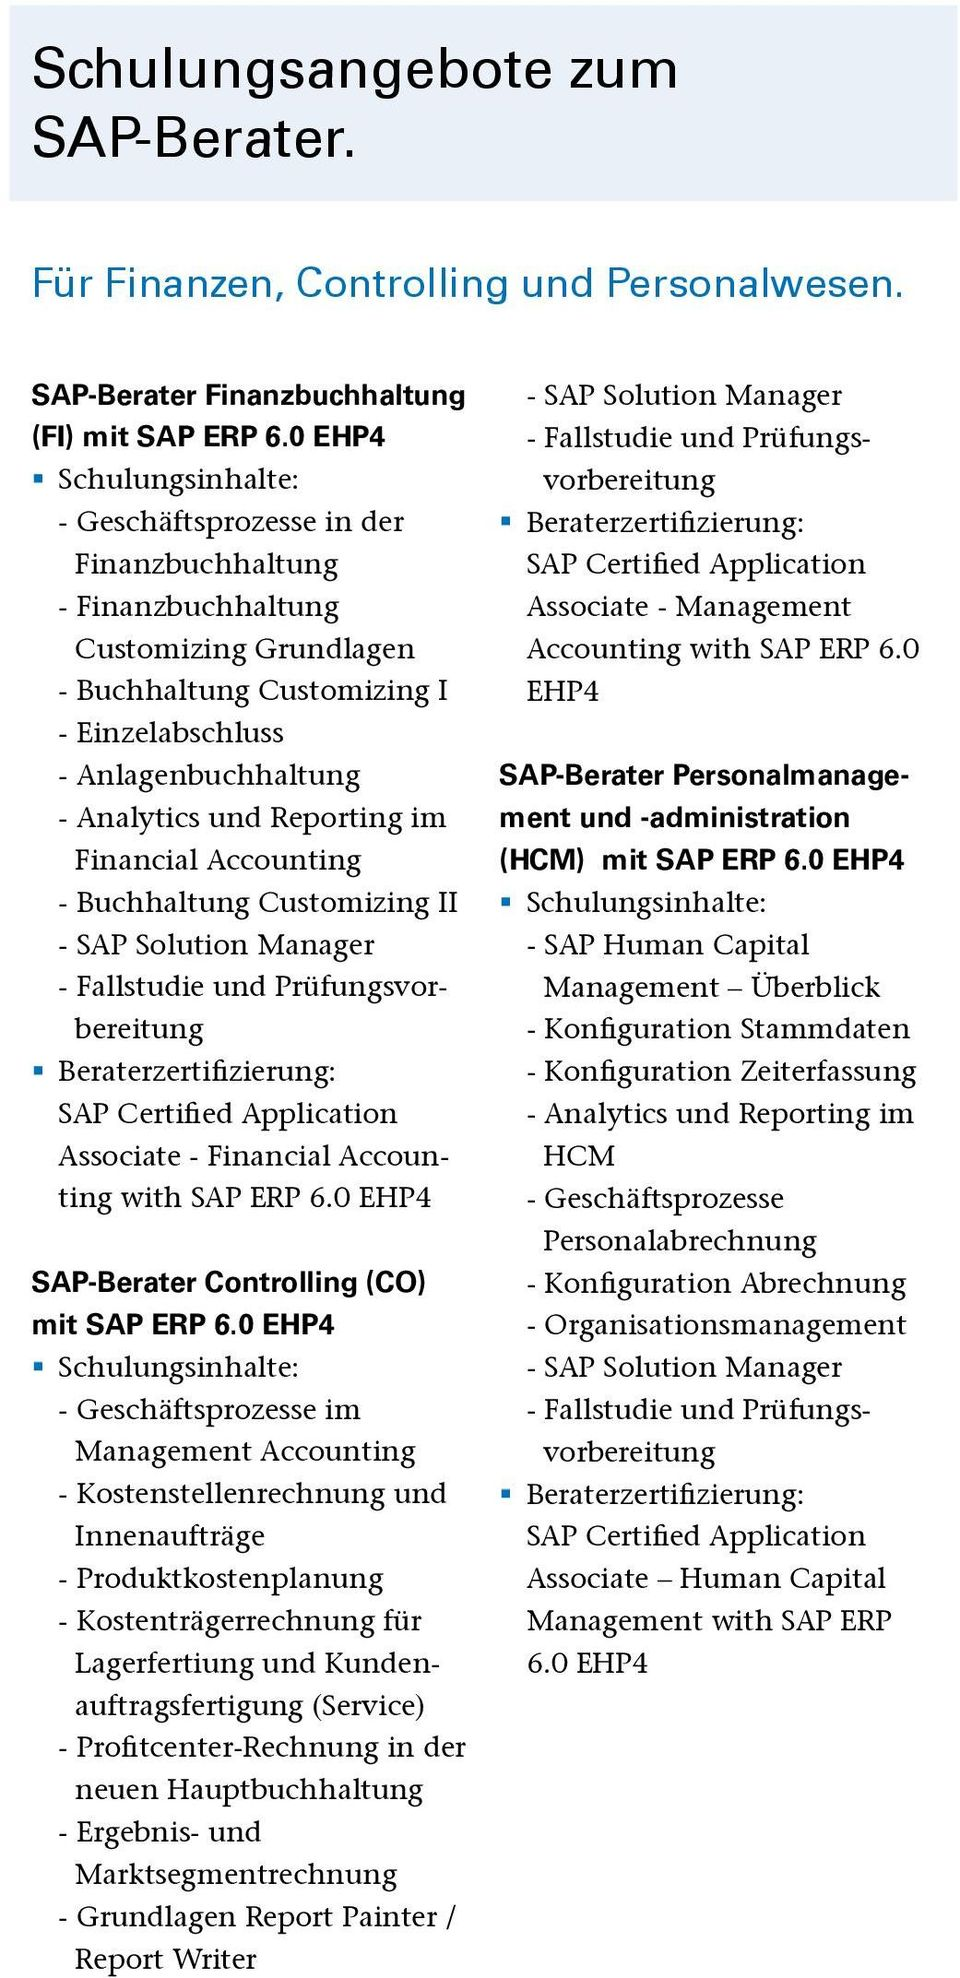 Financial Accounting - Buchhaltung Customizing II - SAP Solution Manager - Fallstudie und Prüfungsvorbereitung Beraterzertifizierung: SAP Certified Application Associate - Financial Accounting with